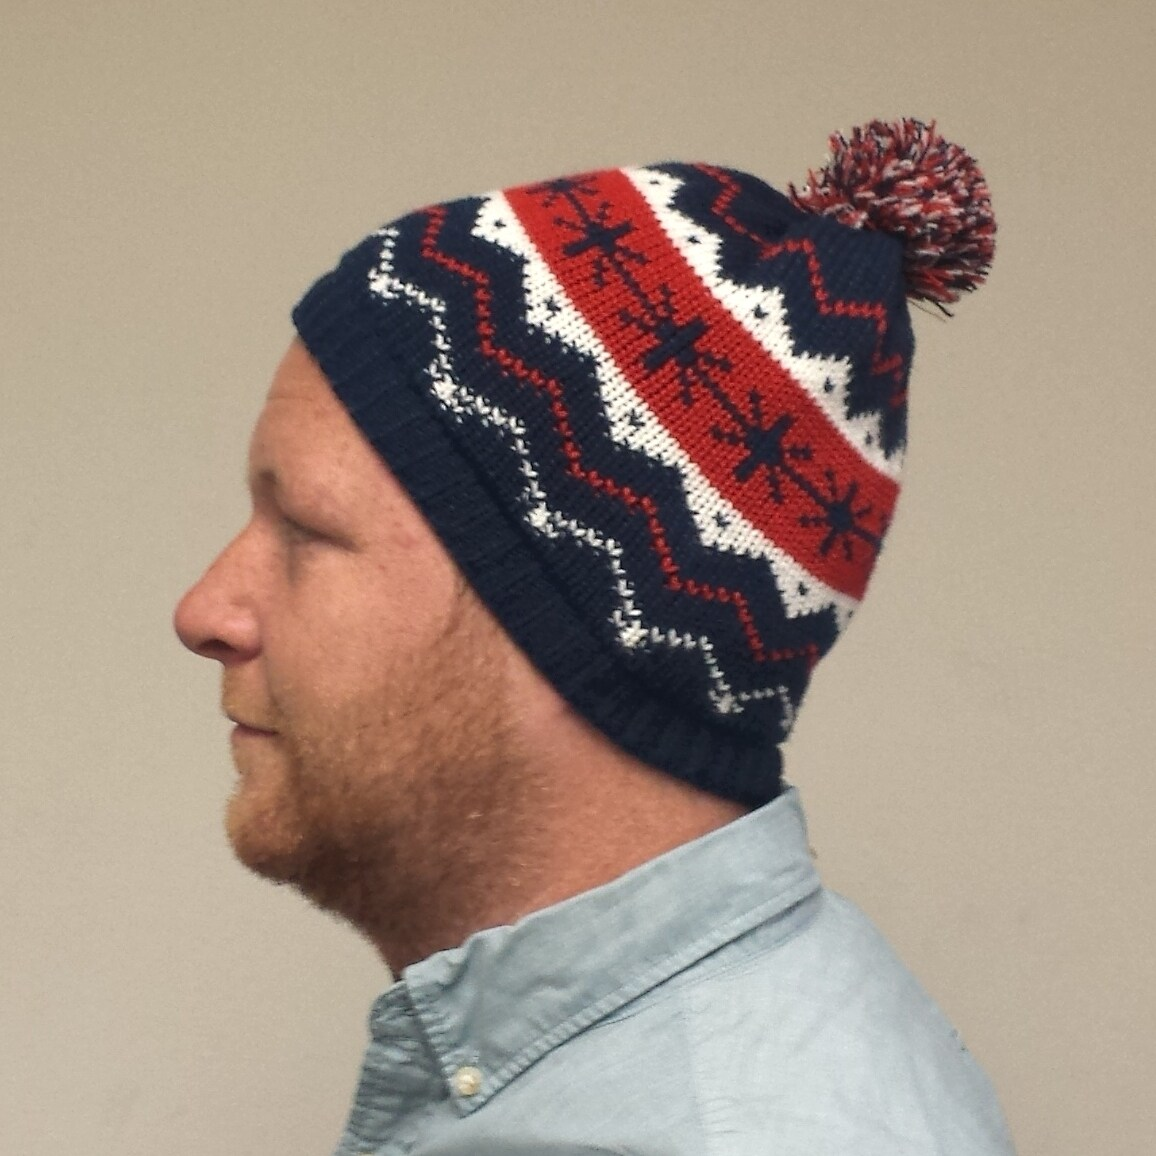 Shop Kevin Mccallister Home Alone 2 Knit Hat Beanie Macaulay Culkin Movie  Snowflakes - Free Shipping On Orders Over  45 - Overstock - 10293279 3d66a383c4a